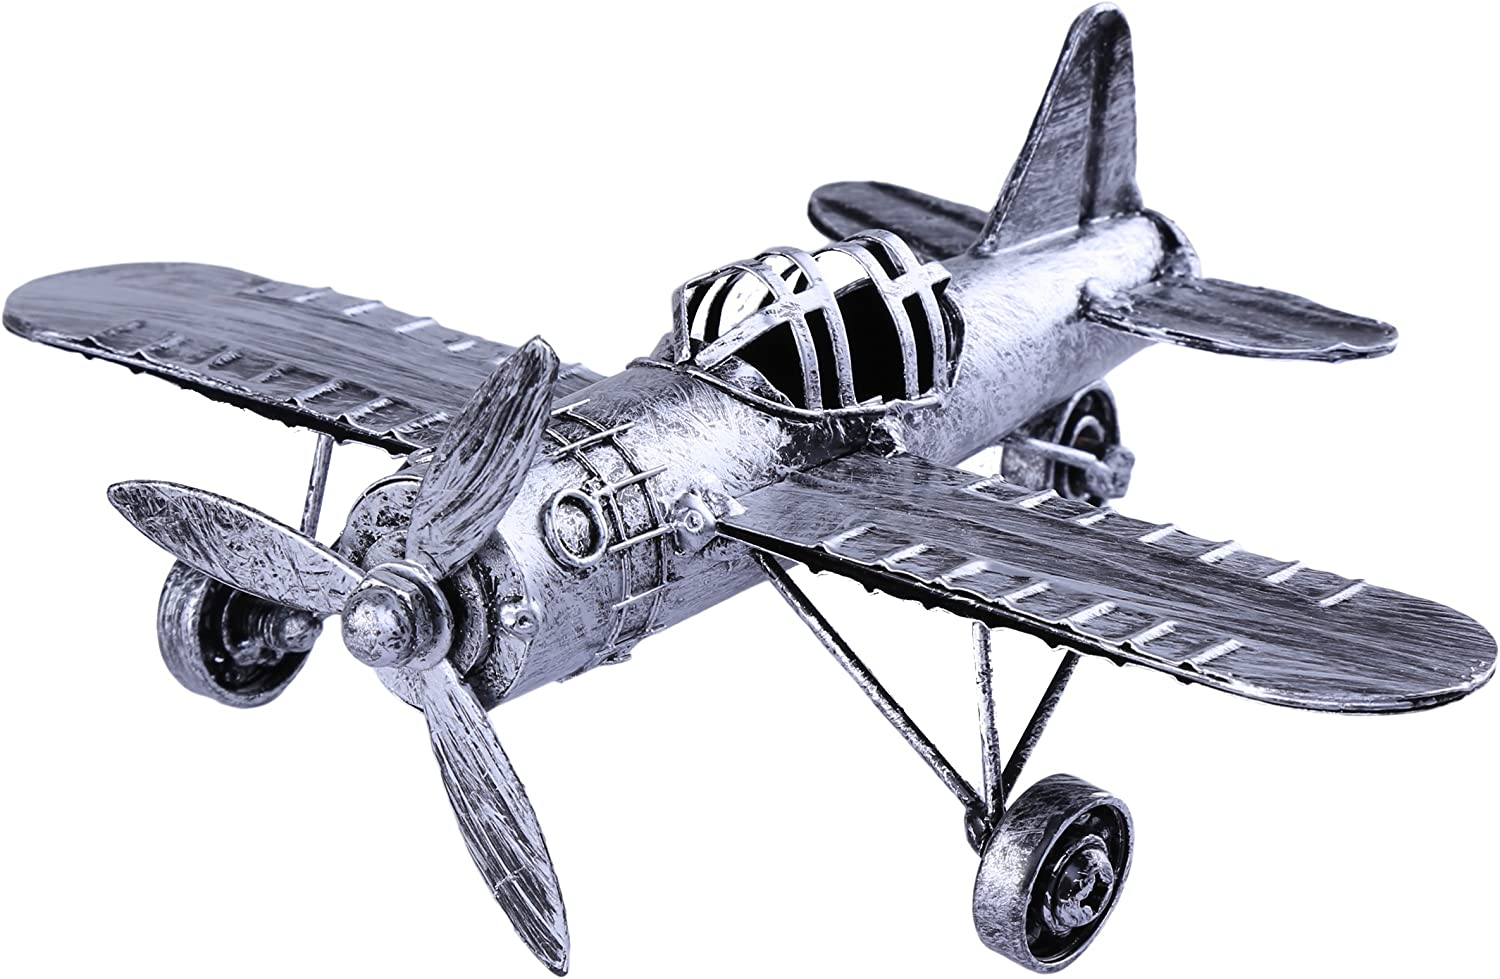 Vintage Retro Iron Aircraft Handicraft - Metal Biplane Plane Aircraft Models -The Best Choice for Photo Props Home Decor/Ornament/Souvenir Study Room Desktop Decoration (Silver01)